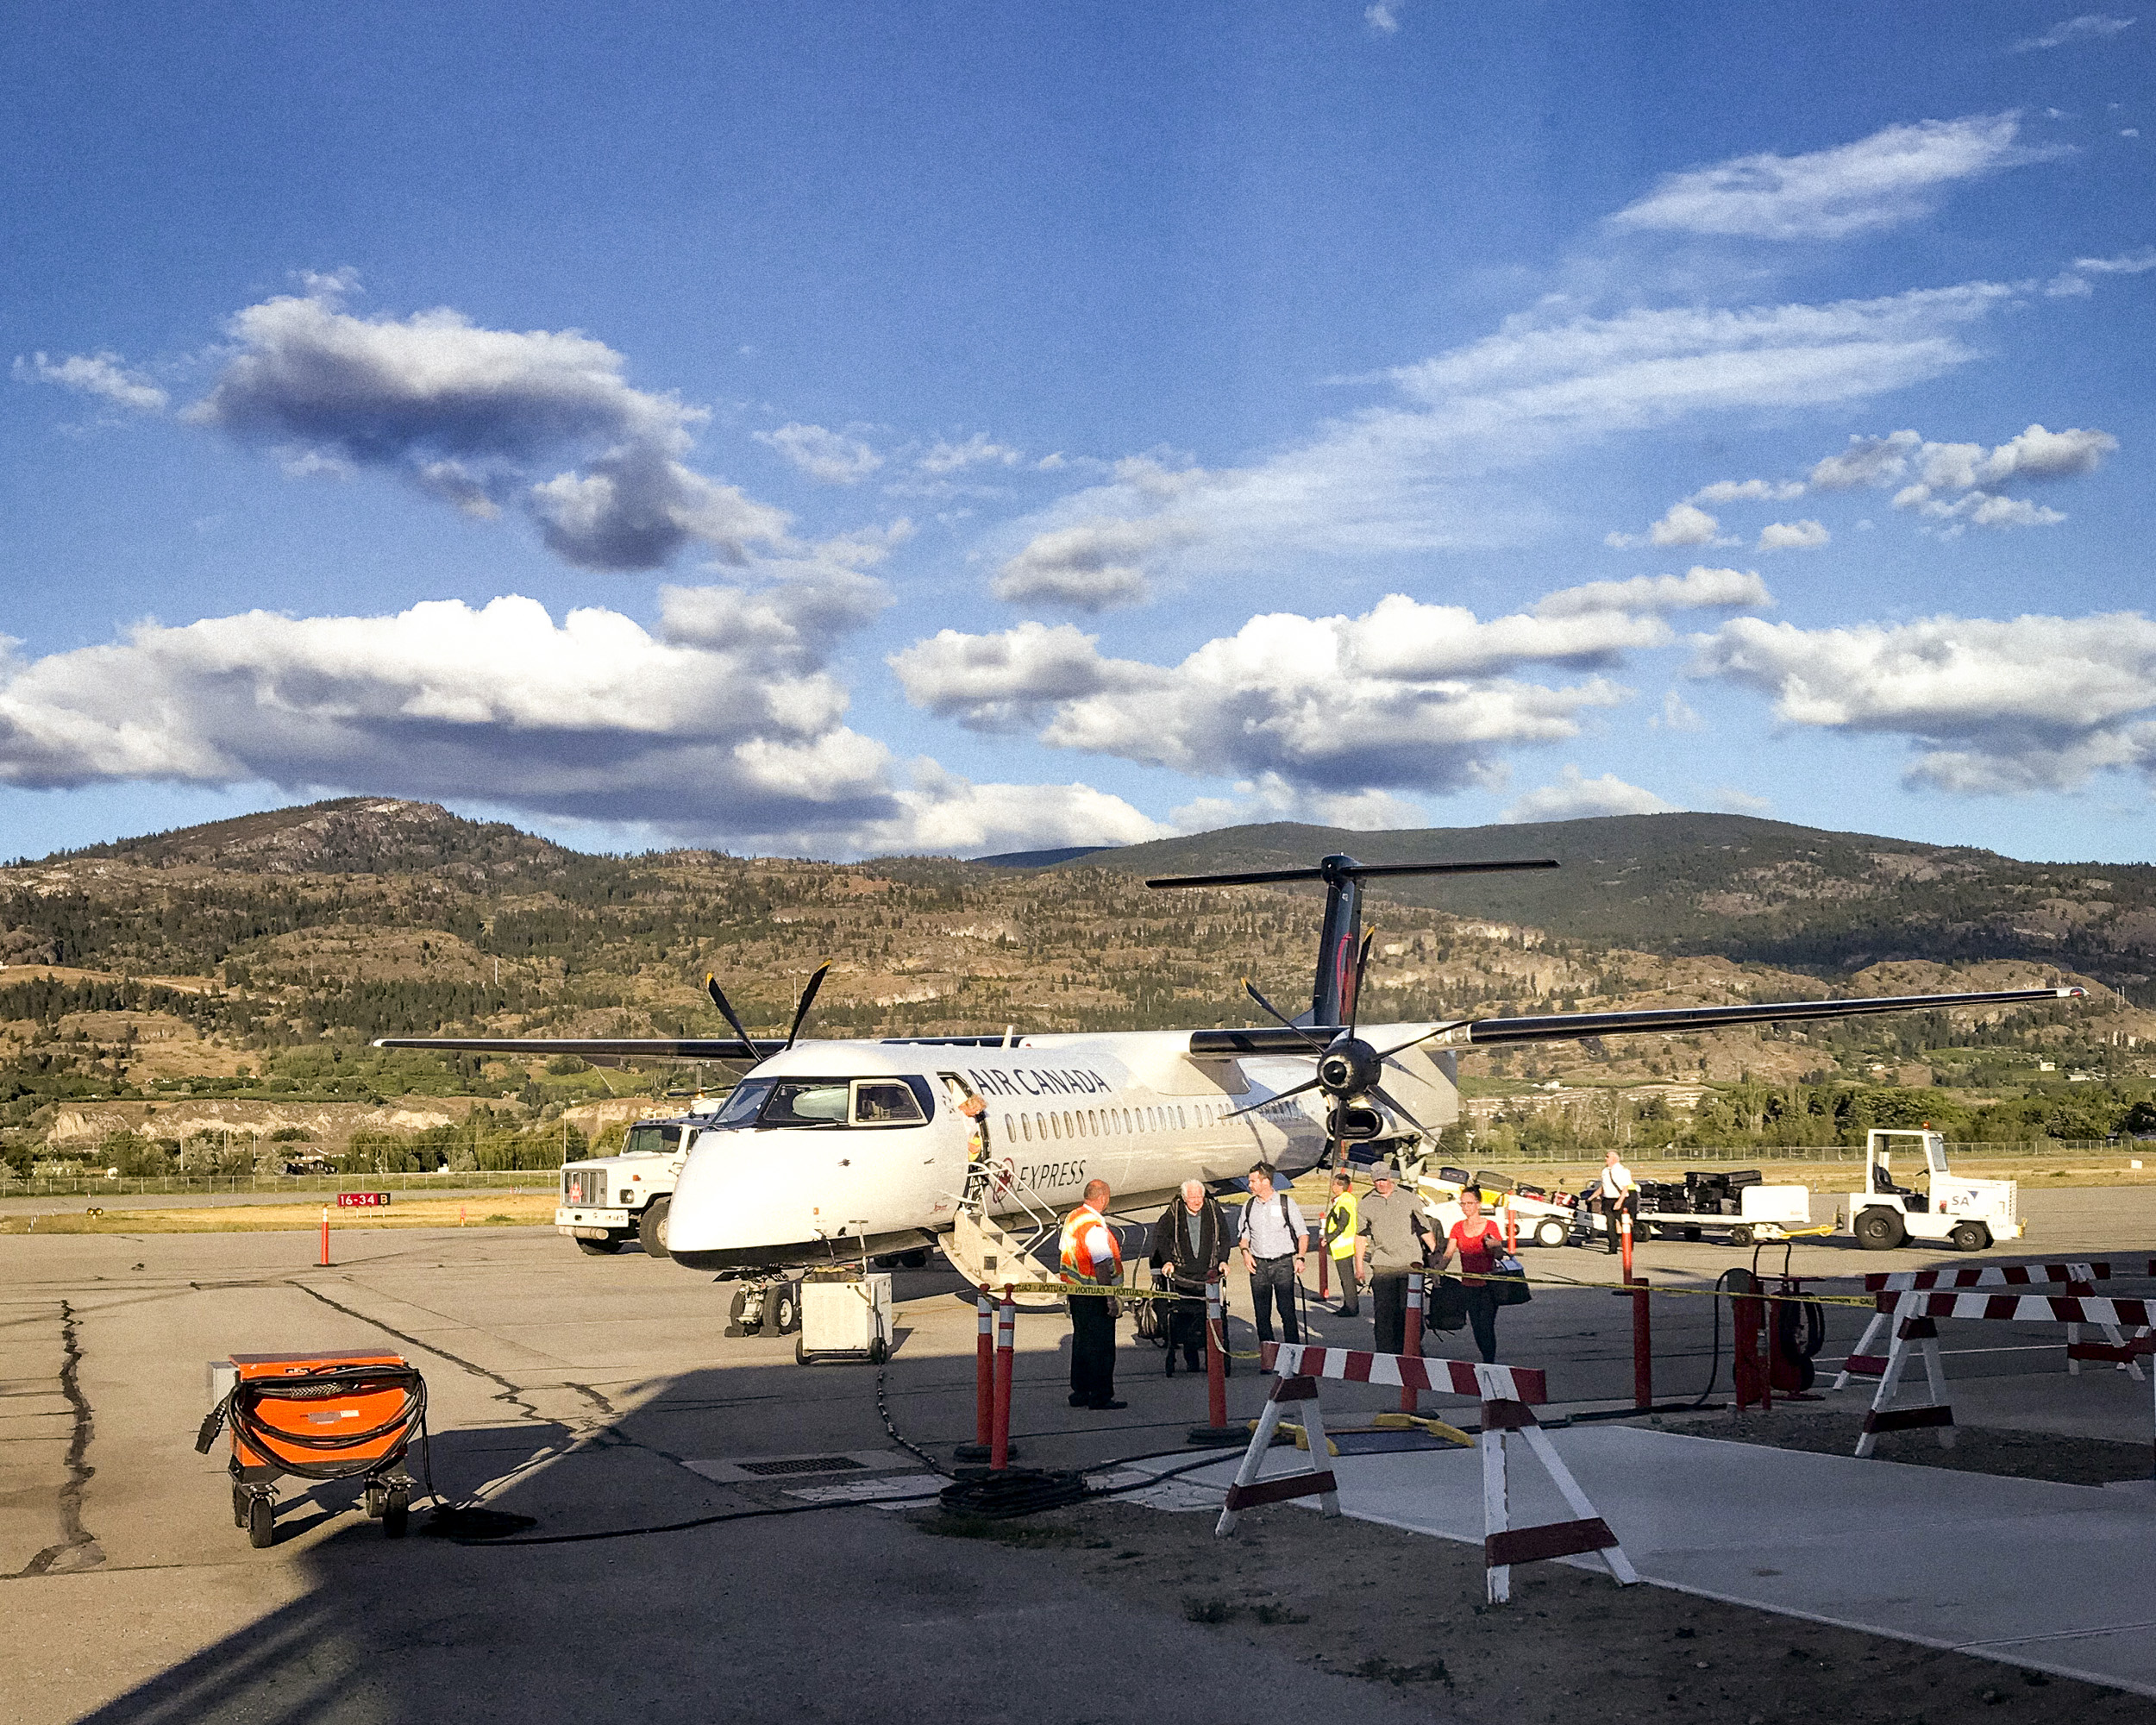 I took this propeller plane from Vancouver to Penticton. Flying in between the mountains, as opposed to over them. was a new and unique experience.